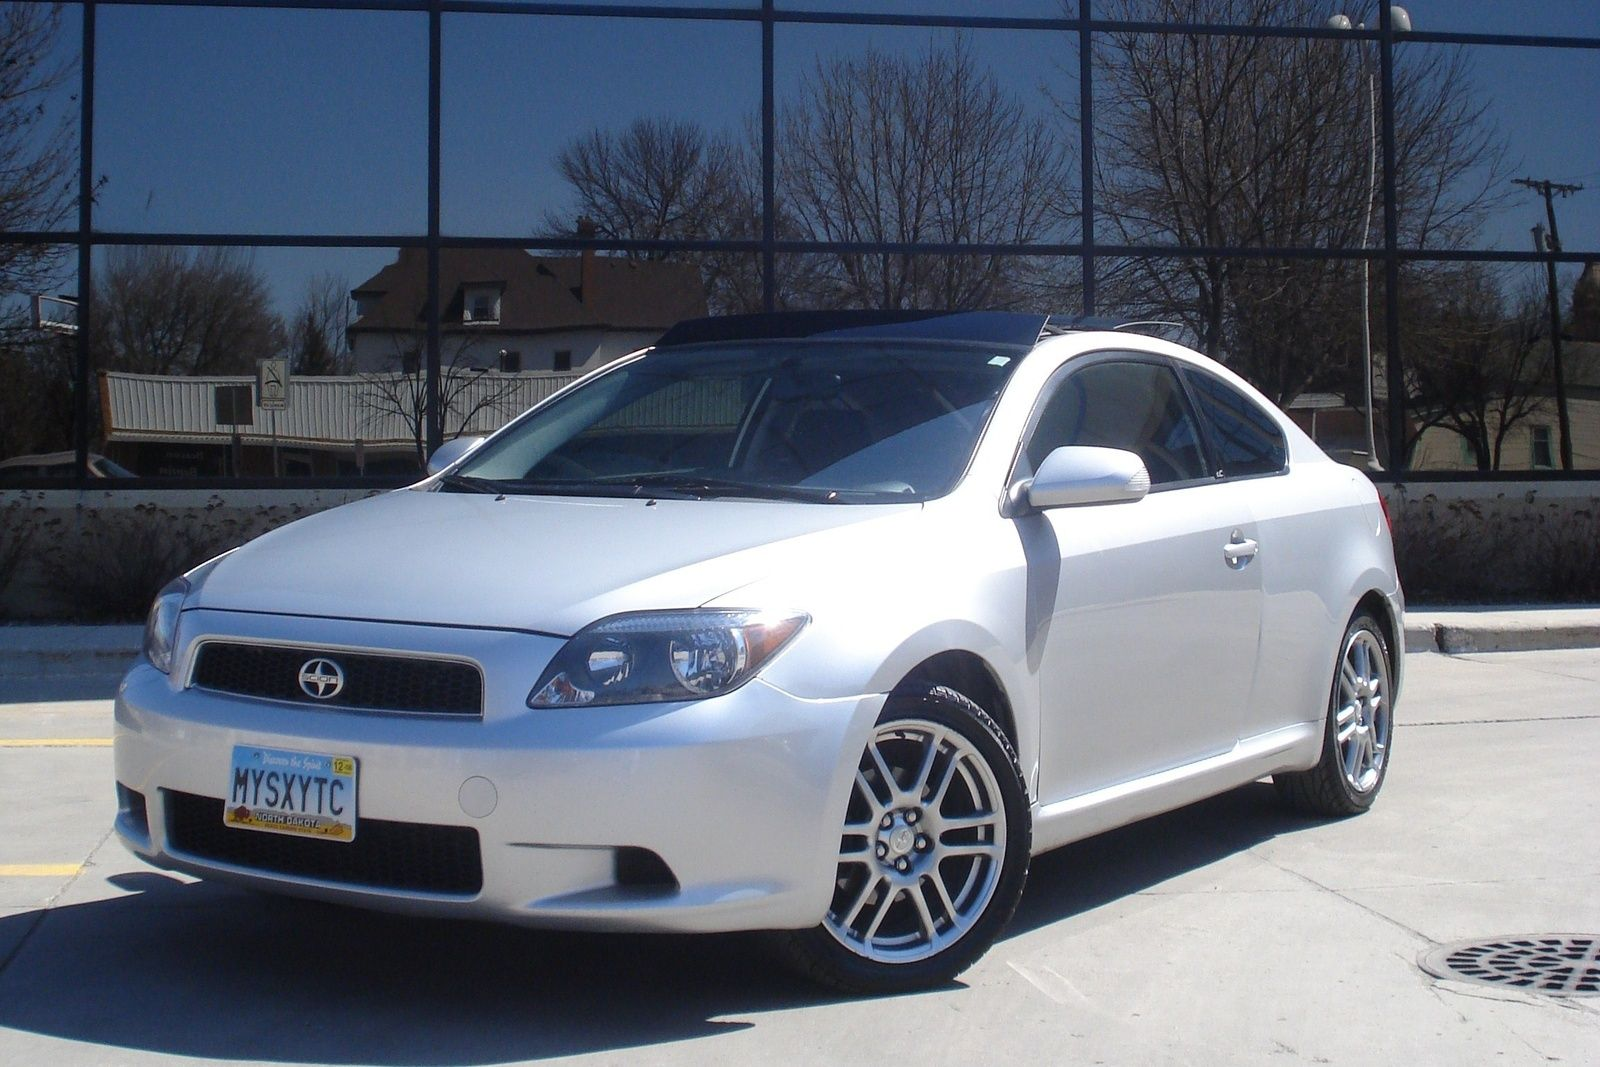 2005 Scion Tc Best Travel Wallpapers Coches Deportivos Deportes